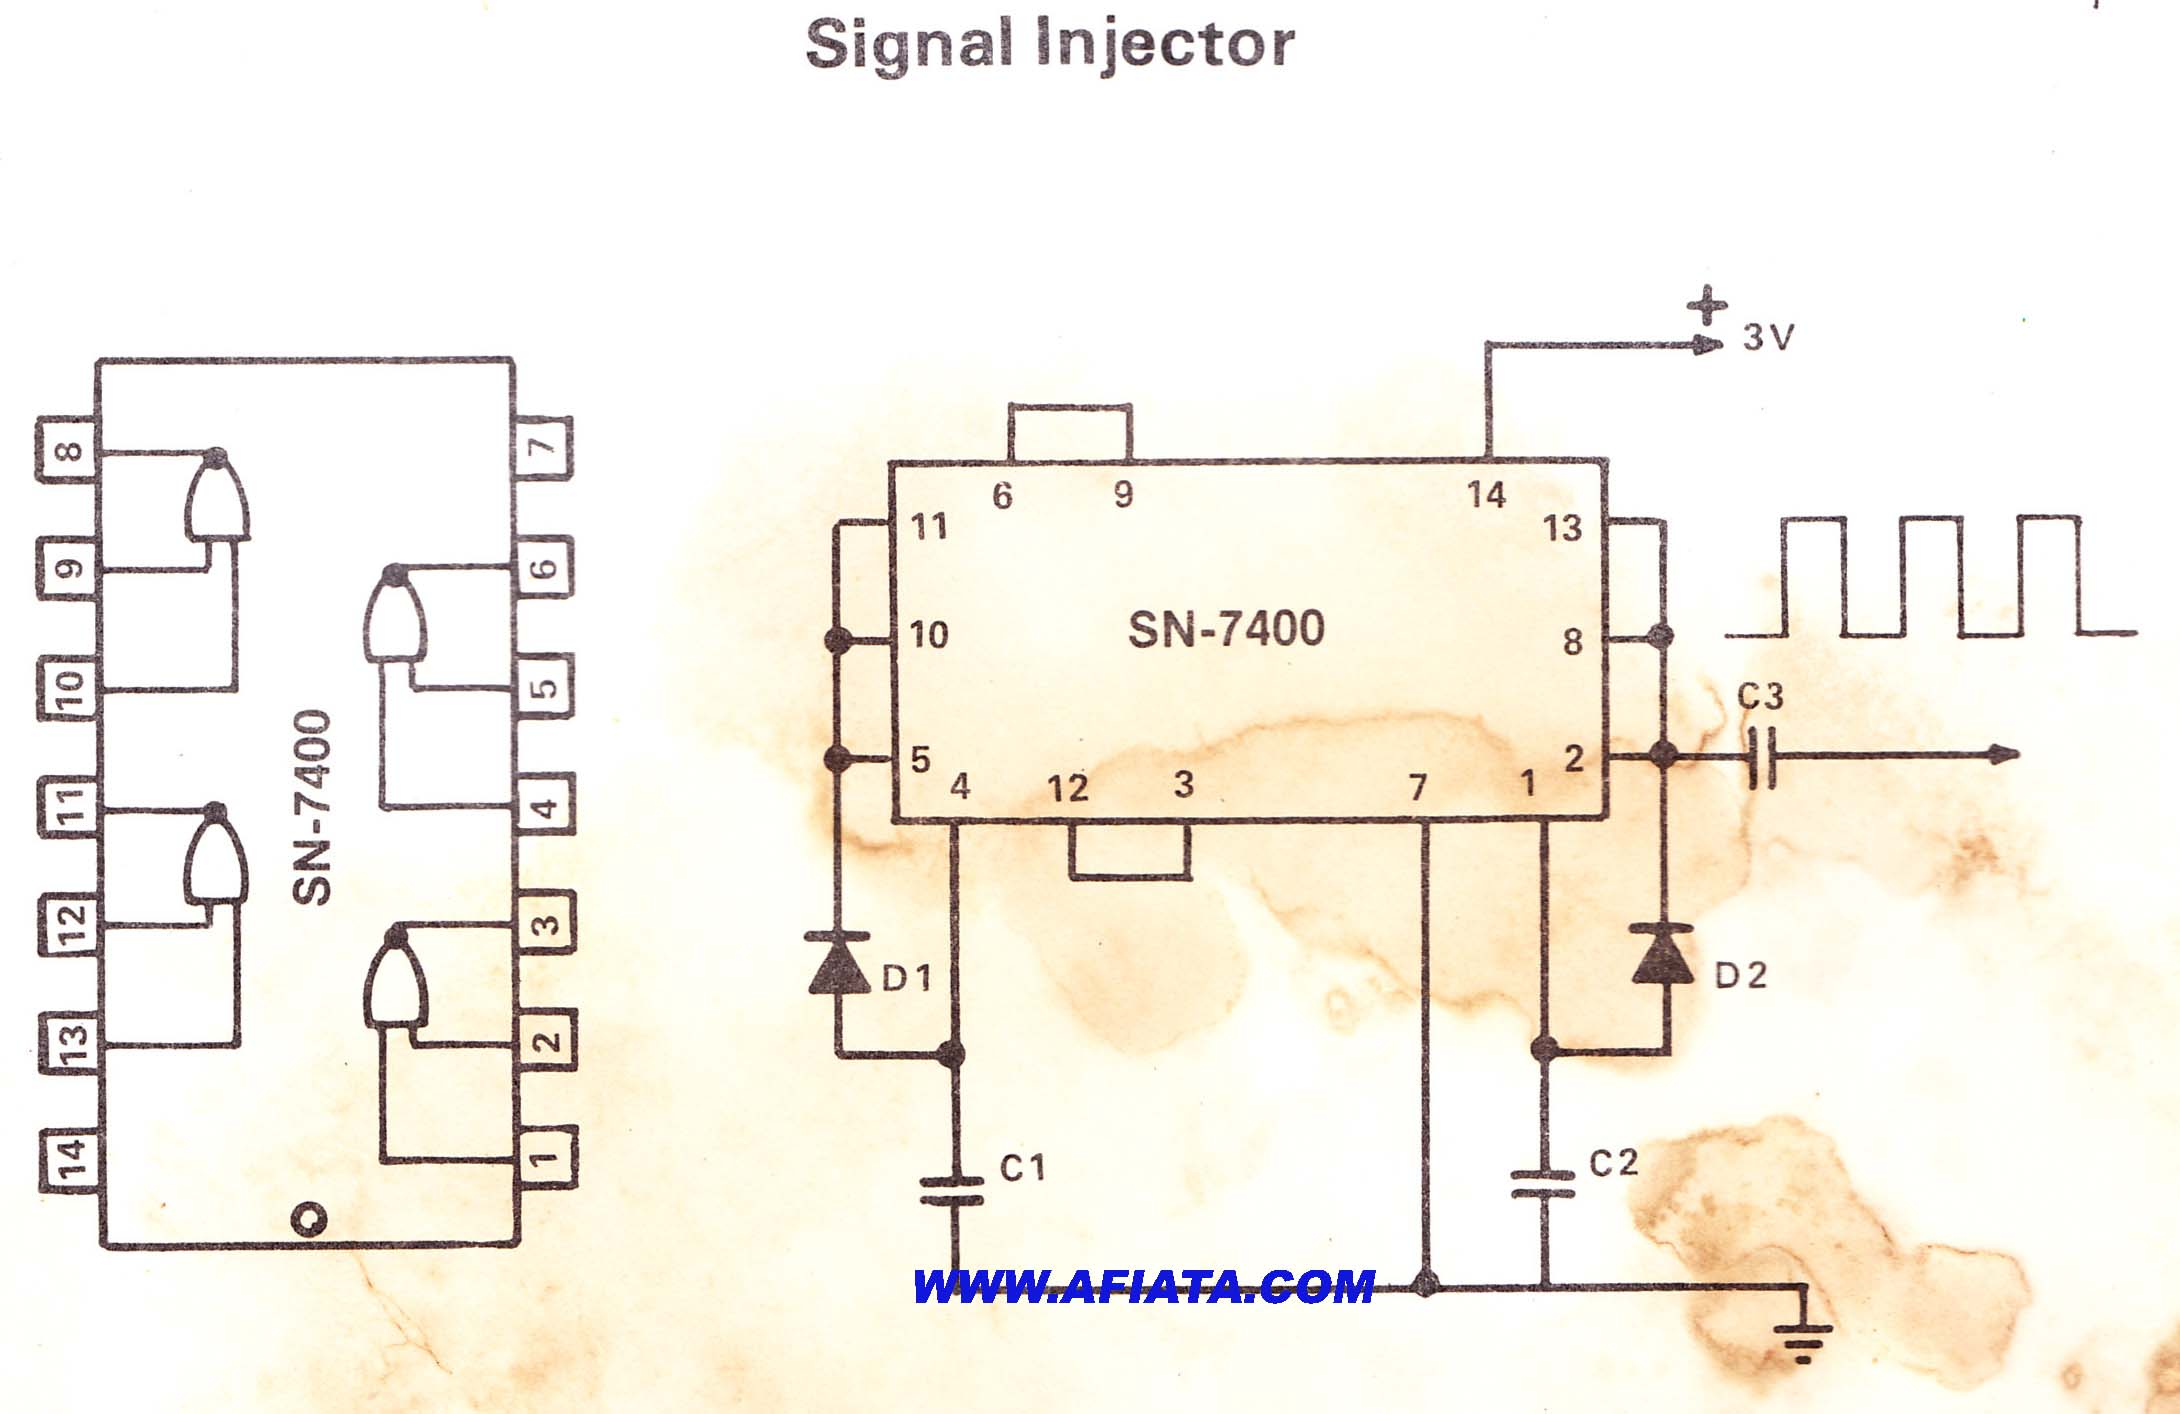 Kenwood Dvr 6300 Smps Power Supply together with Power Supply Regulator Board Schematic likewise Mc Programmer also Schematic together with Lc4245w Toshiba Lcd Tv Power Supply. on electronic circuit schematic diagrams